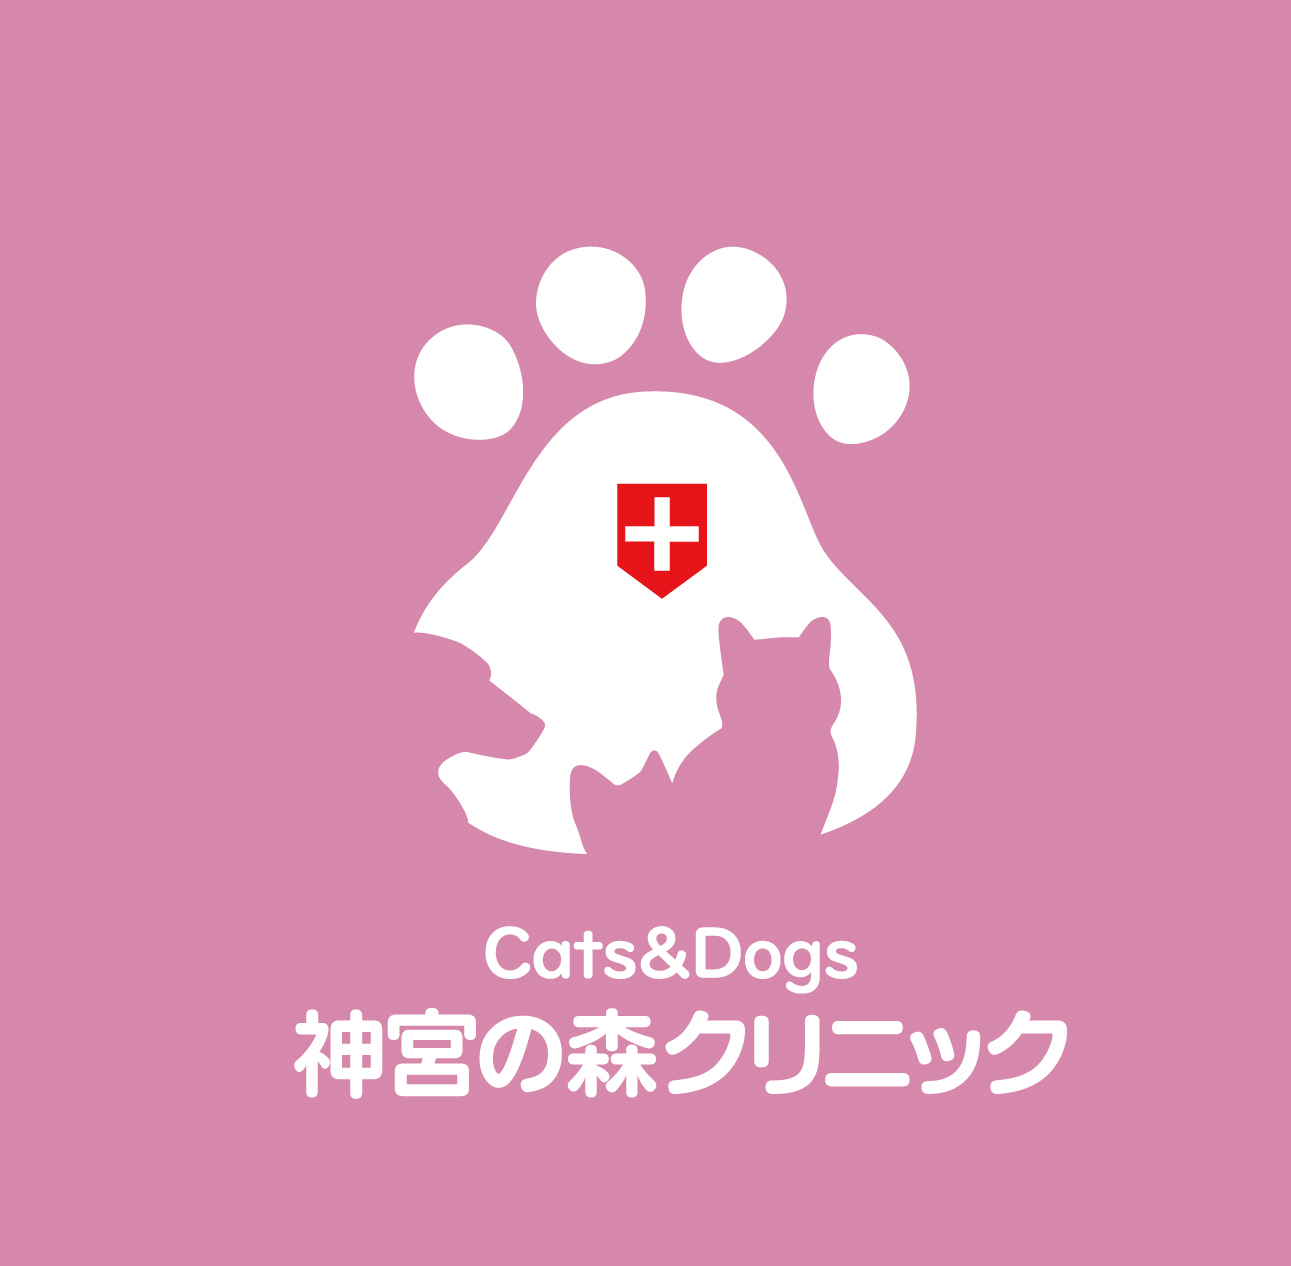 Cats&Dogs 神宮の森クリニック病院ロゴ